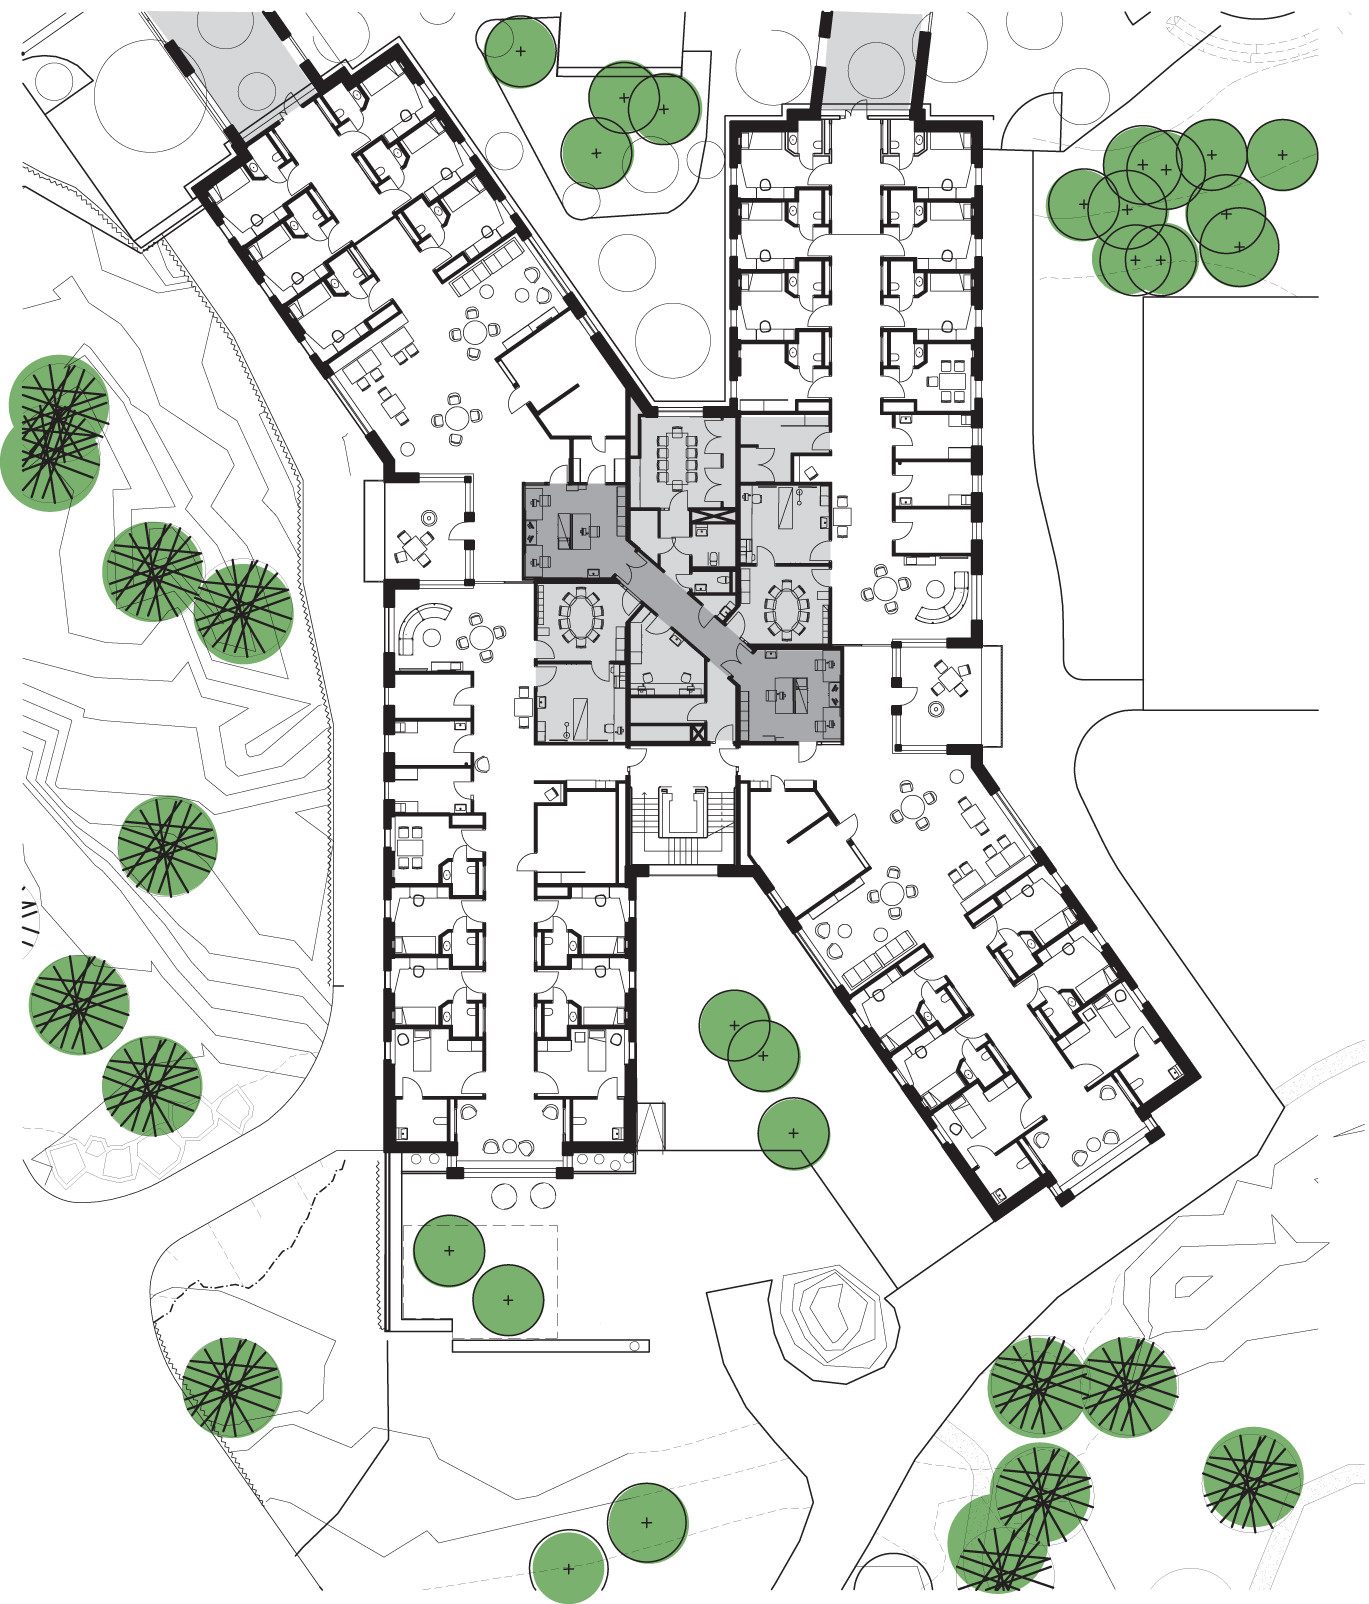 Cancer Center Floor Plan Gallery Of Helix Forensic Psychiatric Clinic Of Stockholm